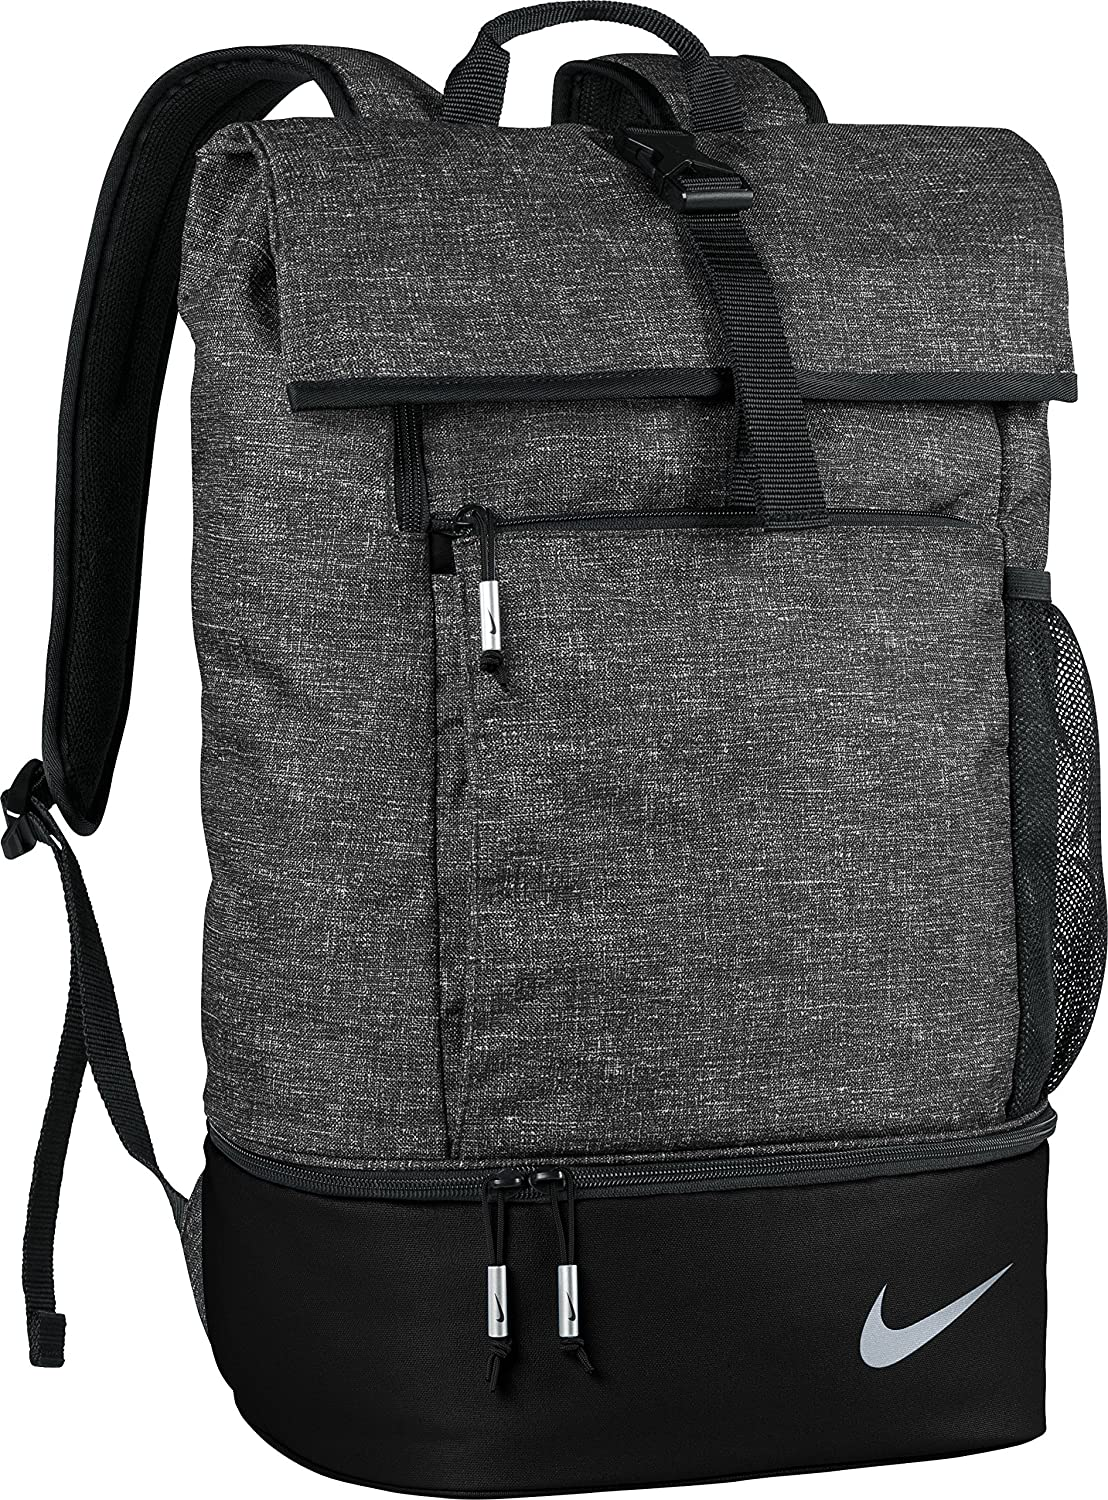 734921ec20 Amazon.com  Nike Sport III Golf Backpack (Black Heather)  Sports   Outdoors